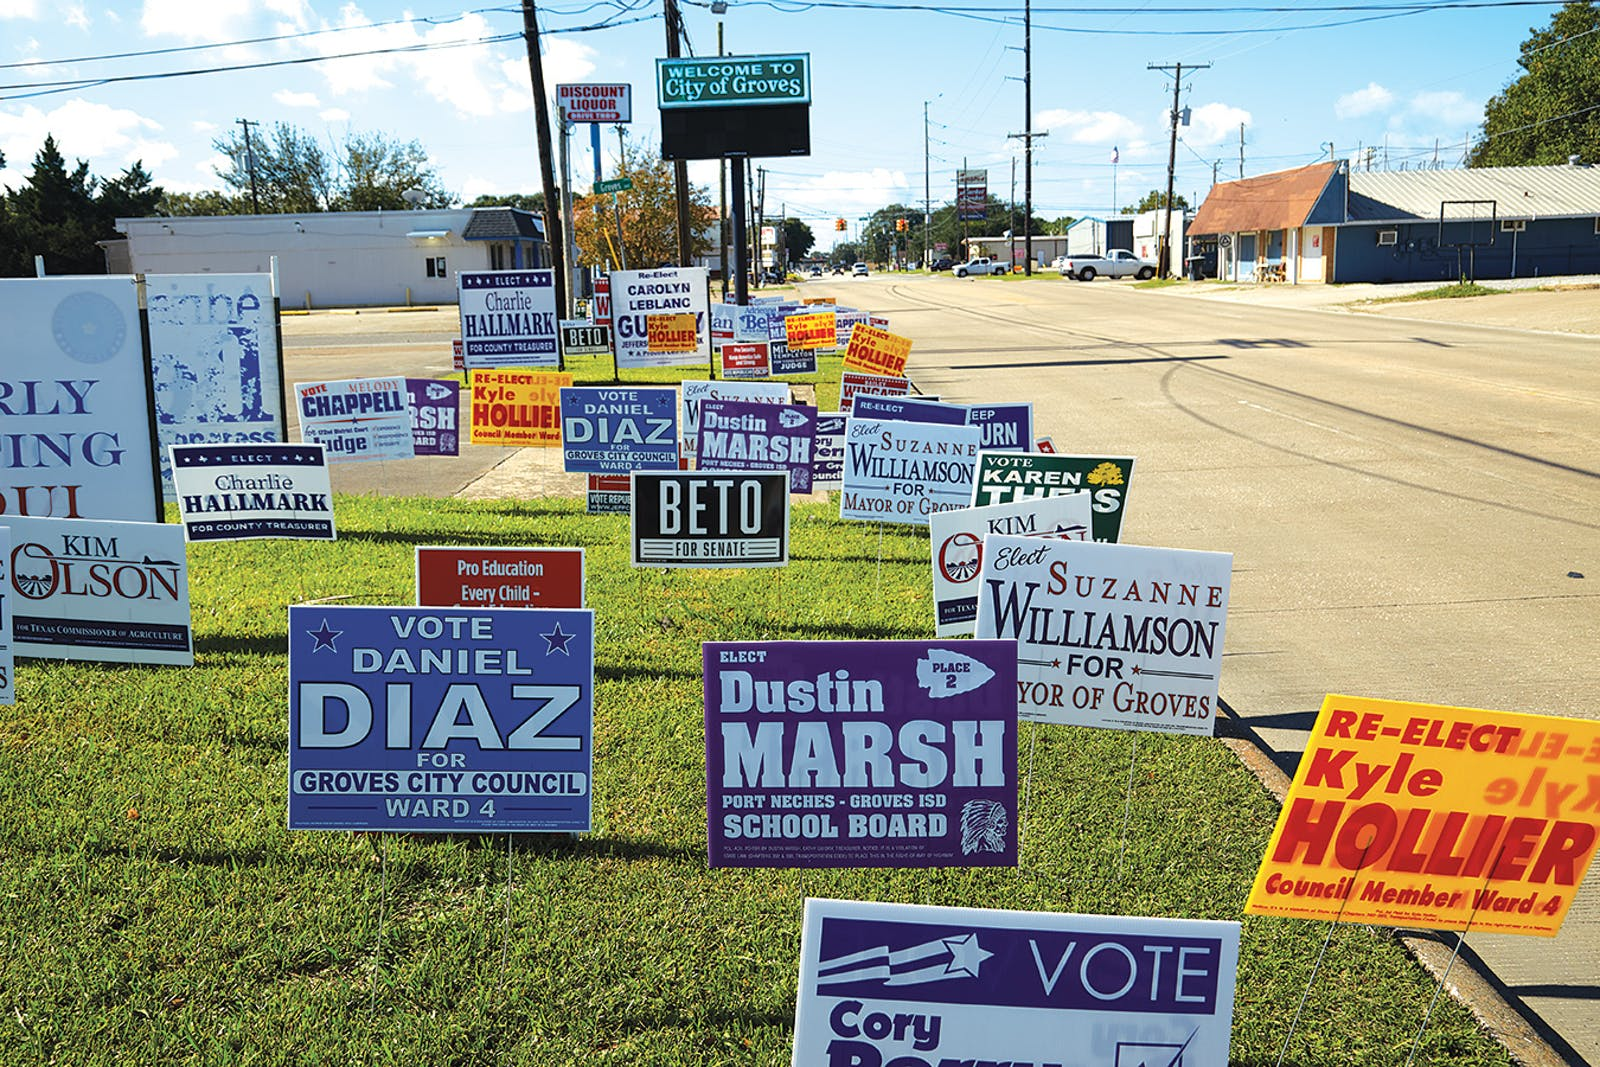 Lawn signs on 39th Street promoting candidates for the upcoming election.